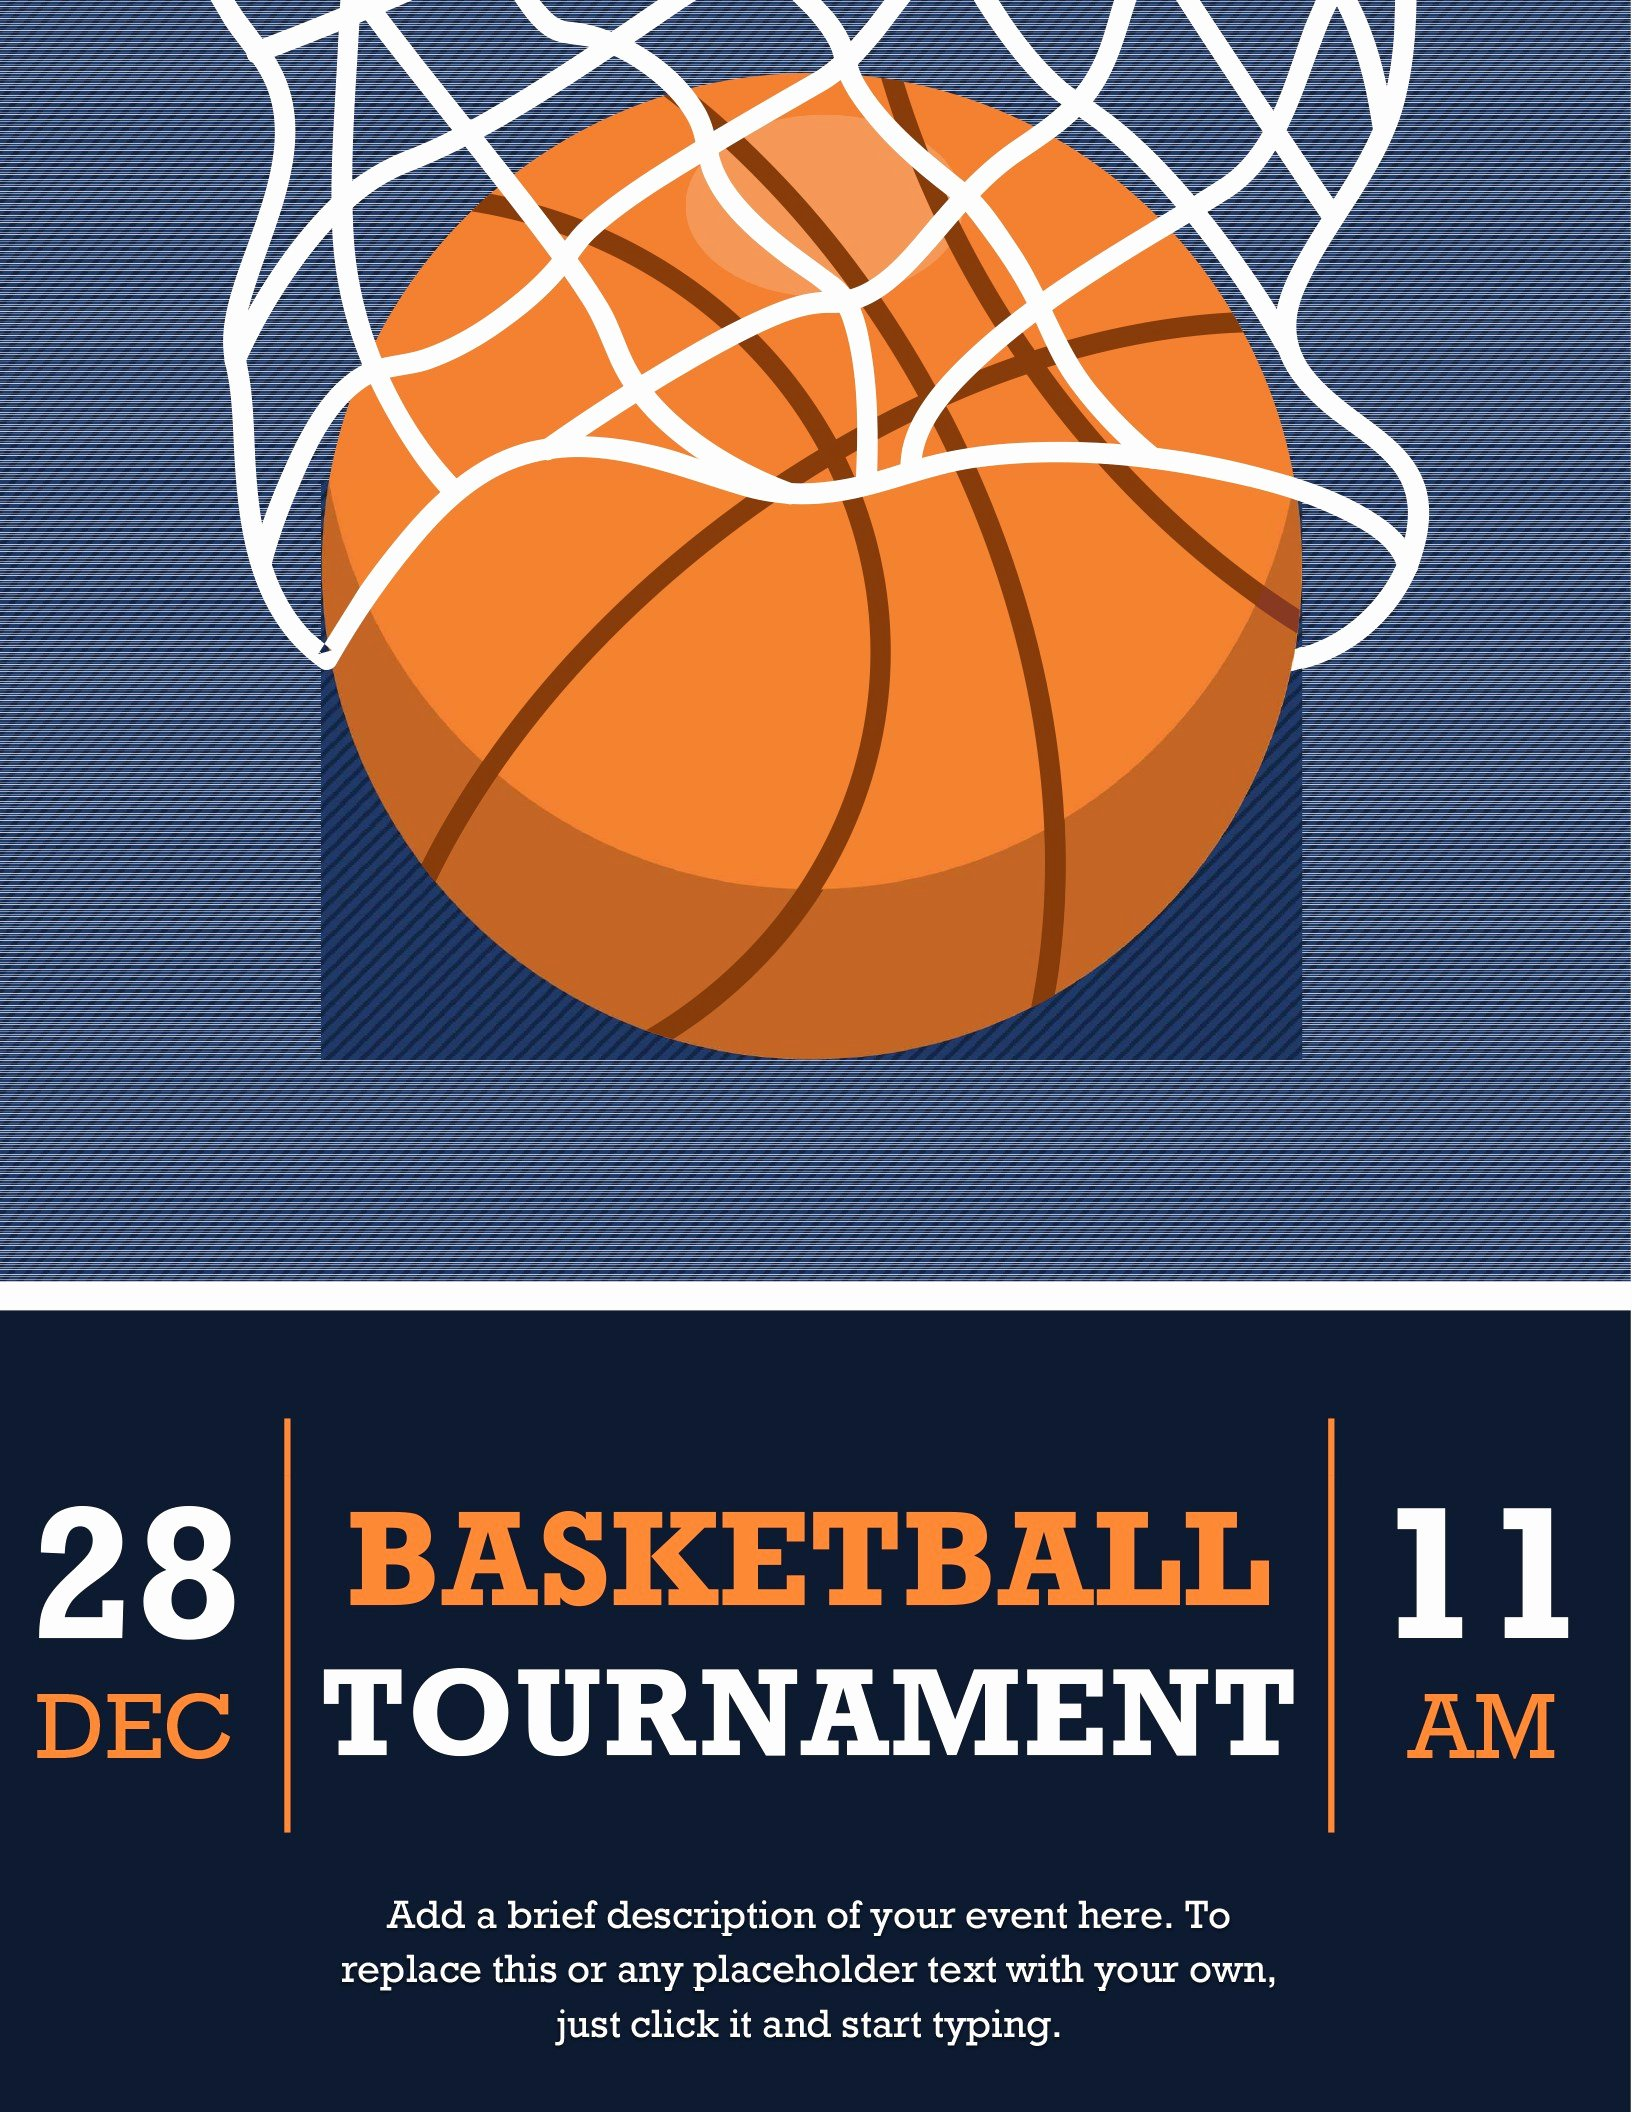 Basketball tournament Flyer Template Beautiful Flyers Fice